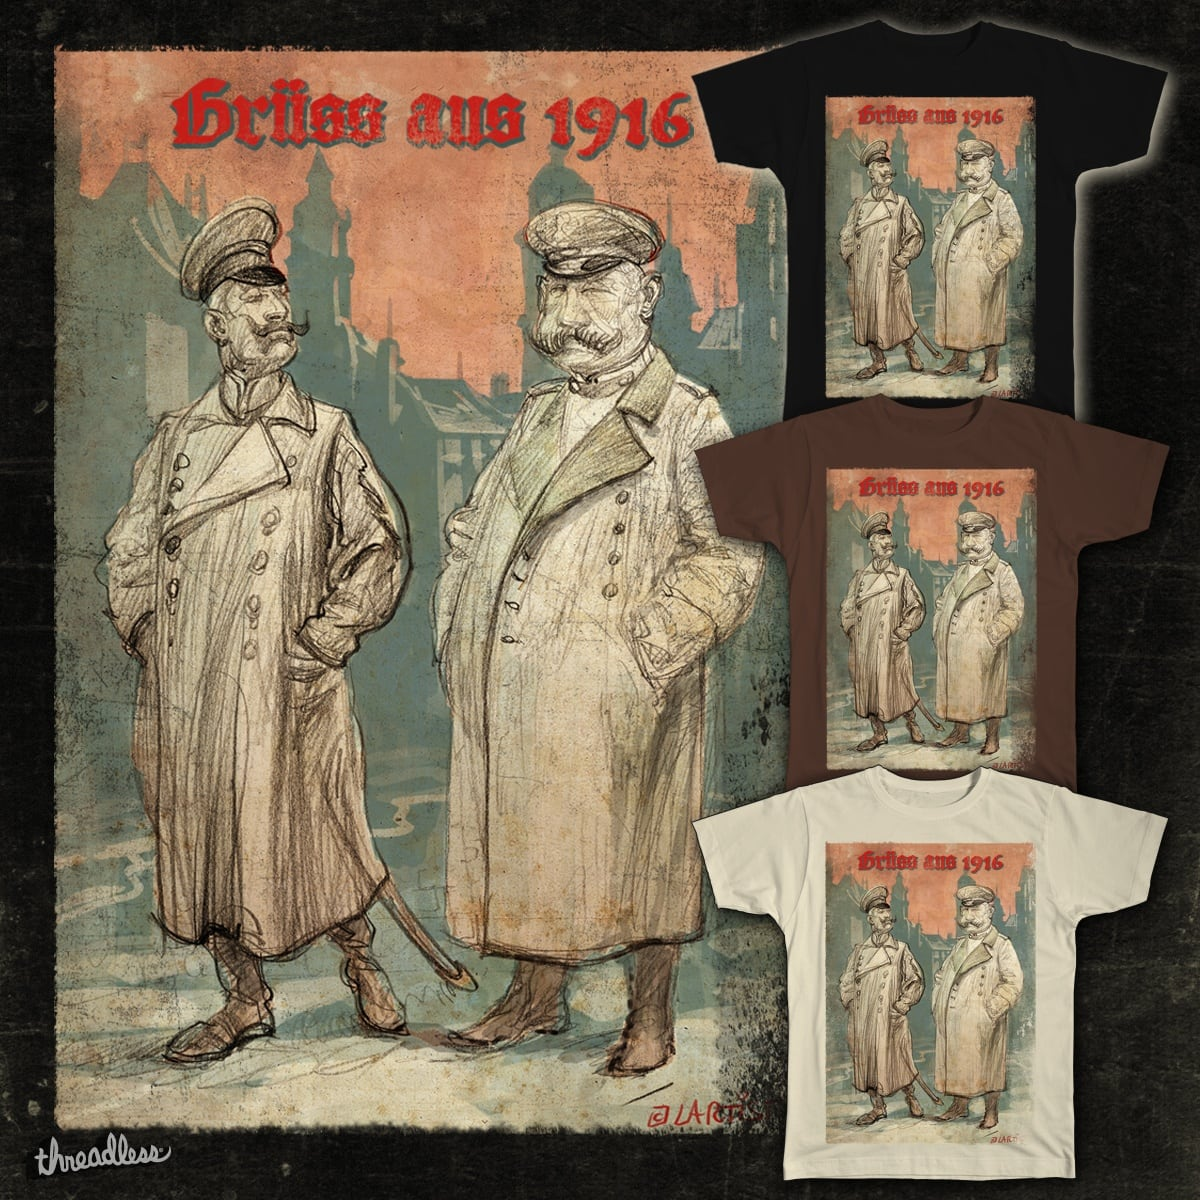 Greetings from 1916 by Laertist on Threadless